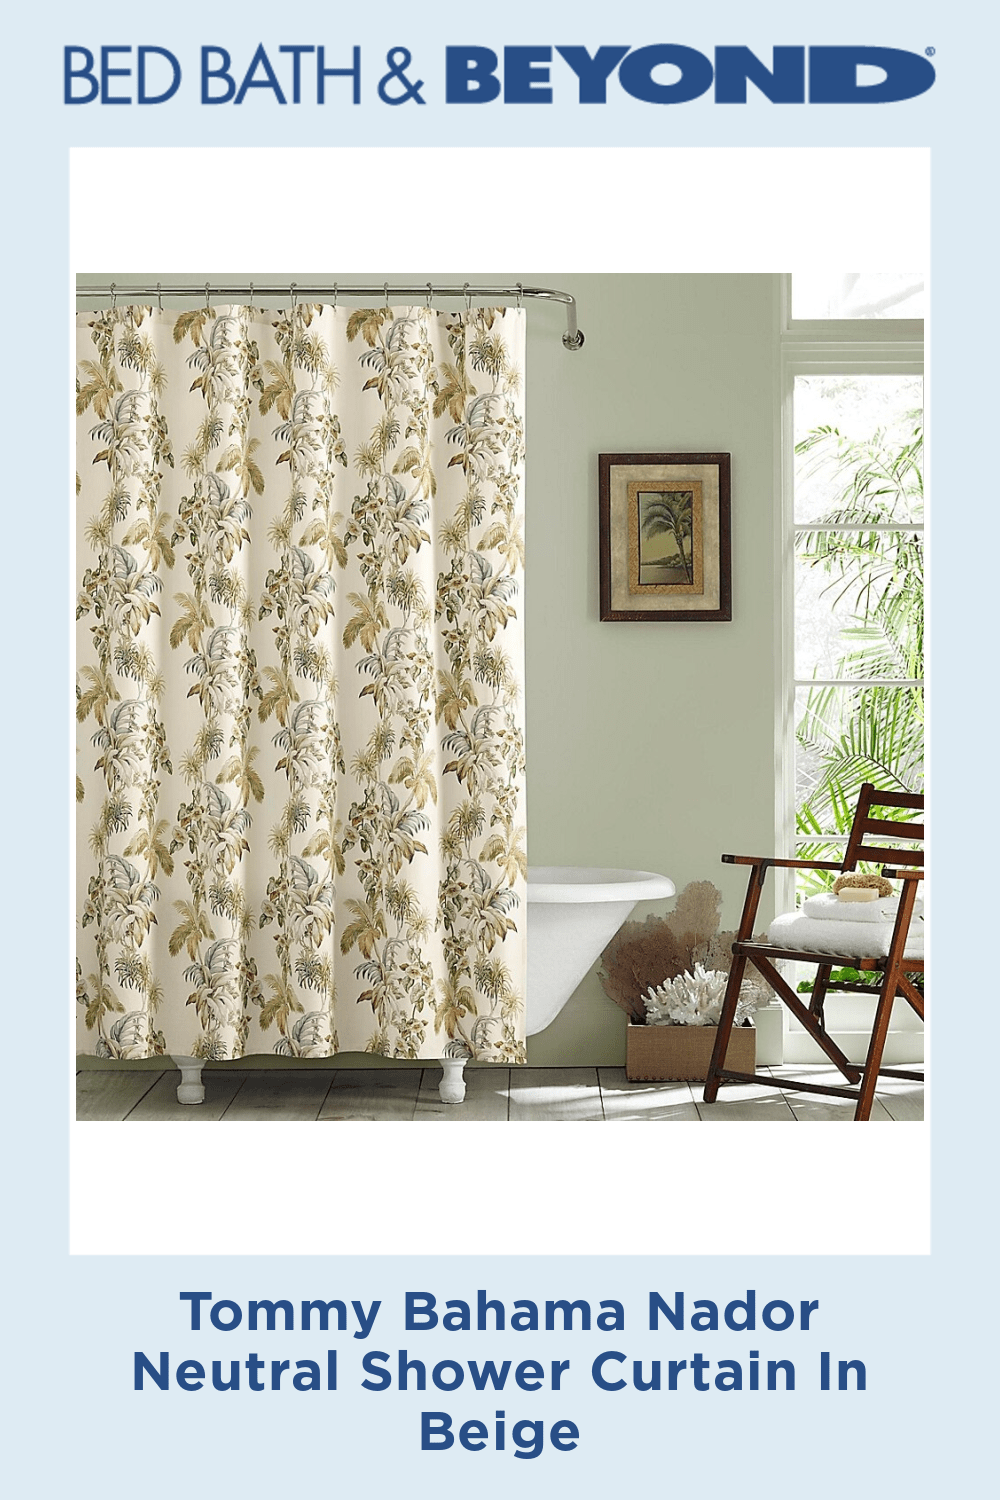 Tommy Bahama Nador Neutral Shower Curtain In Beige